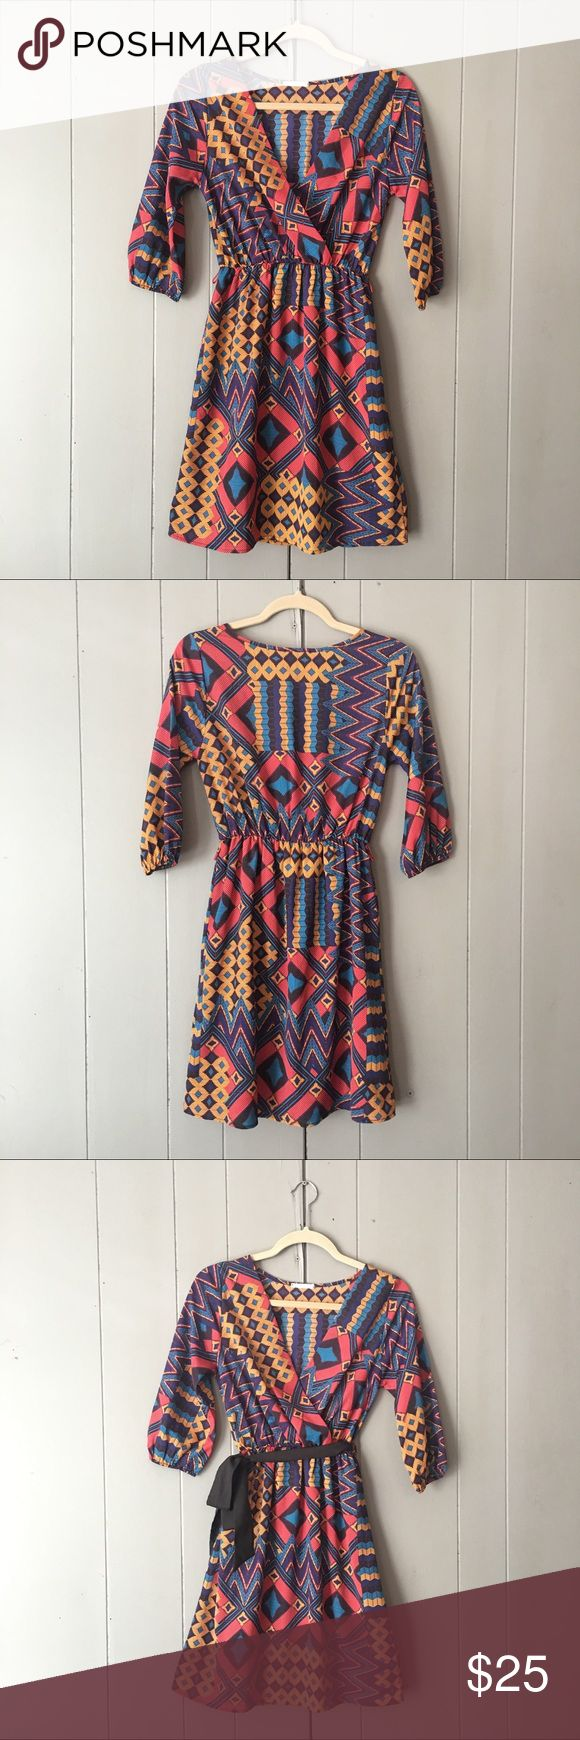 "✨Sale✨Beautiful Tribal Print Dress🍃LIKE NEW🍃 Gorgeous bold colored dress in like new condition! Brand is Everly and dress was purchased from Nordstrom. Skirt is lined. 100% Polyester. Bust is 30"" (armpit to armpit 15""). Length is 35"". Elastic at the waist. Nordstrom Dresses"